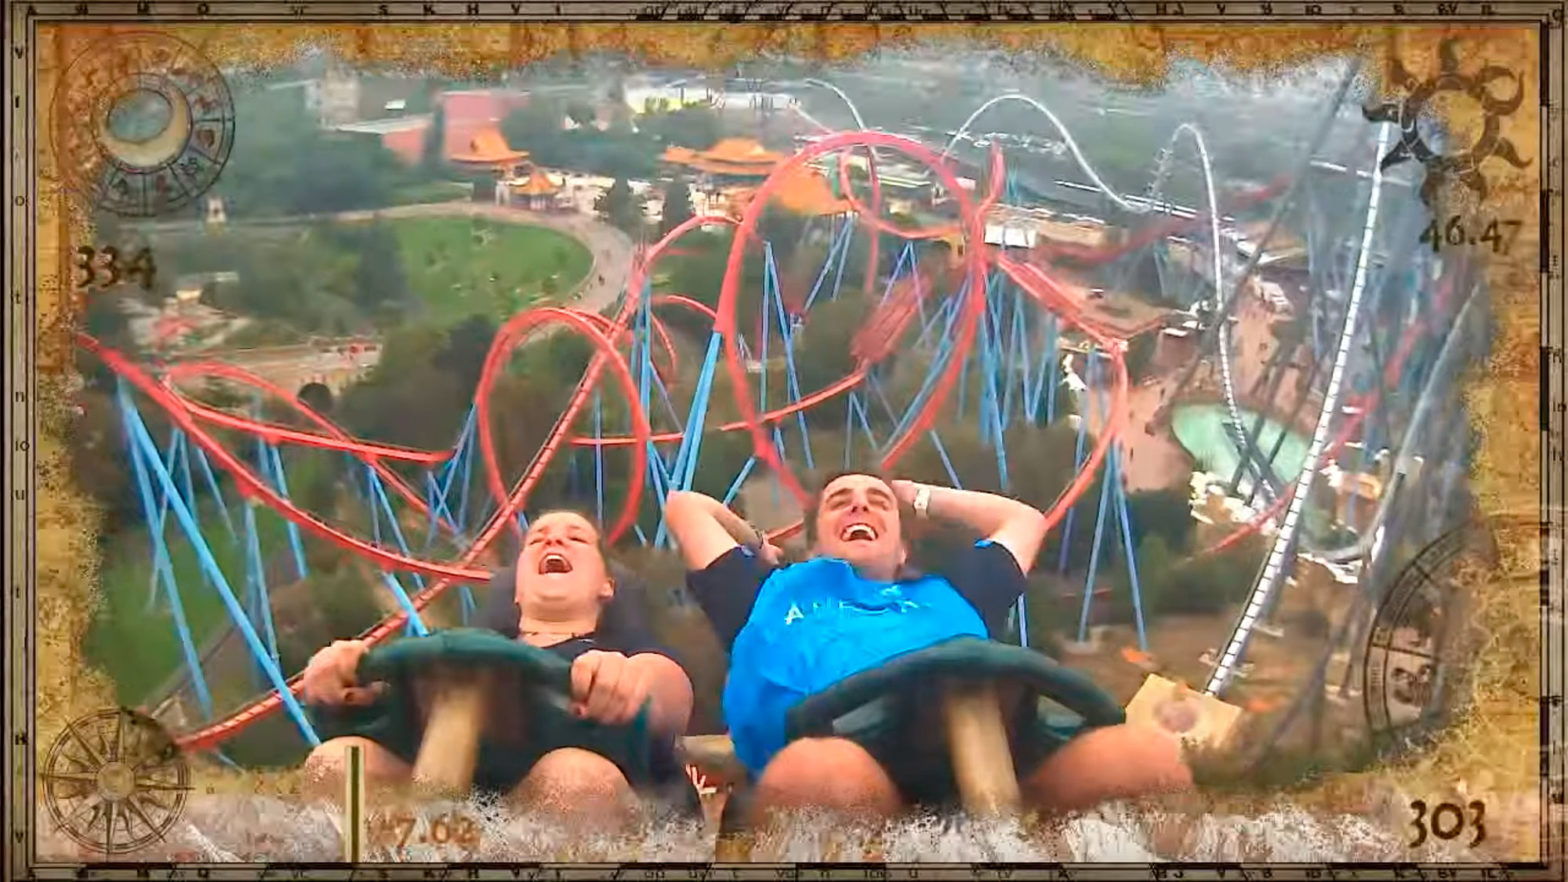 Man Catches Phone Mid-air On Roller Coaster